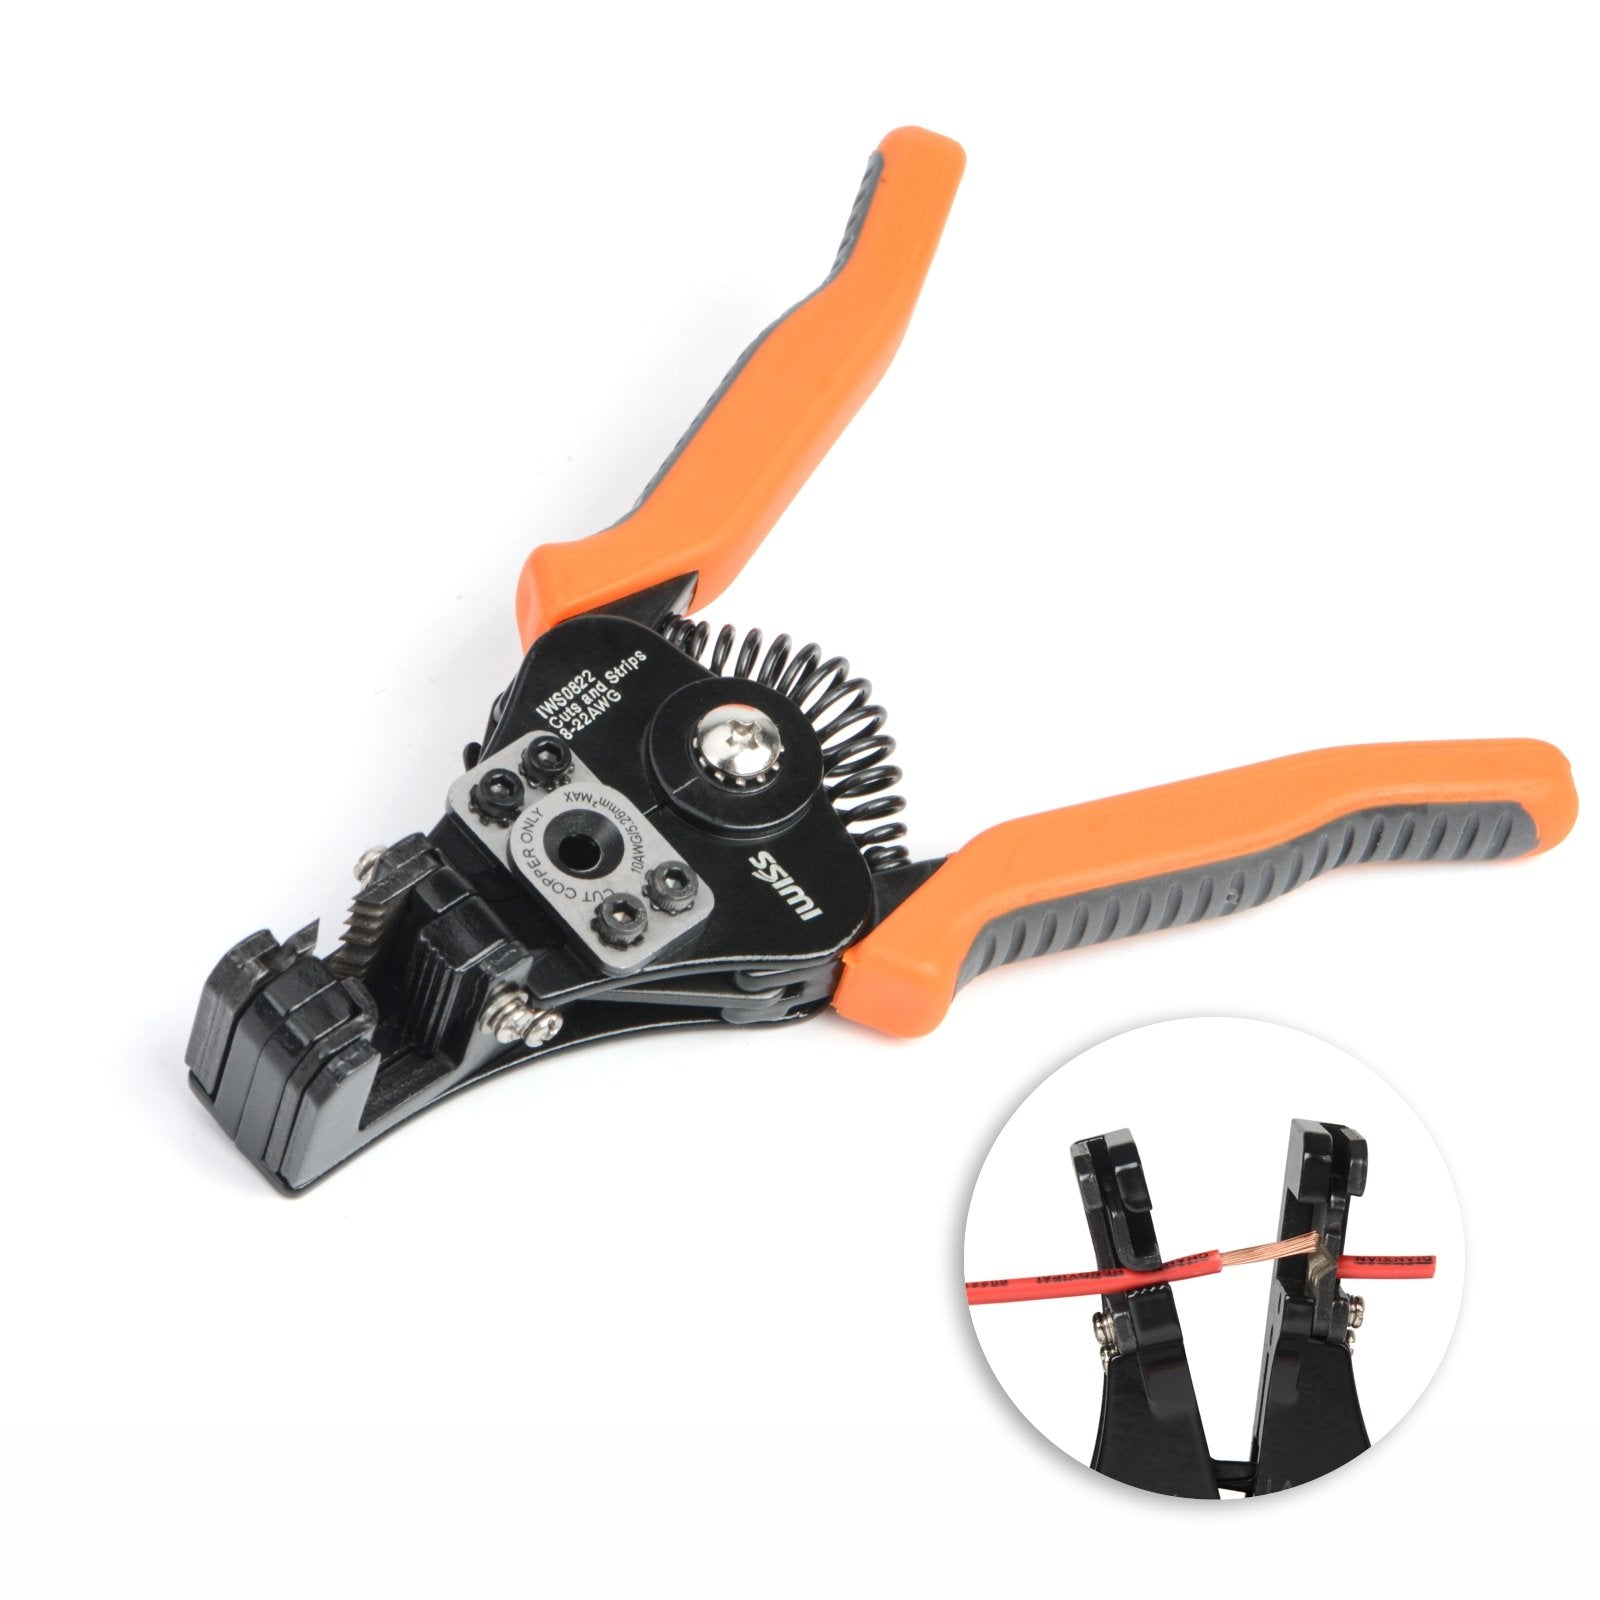 IWS-0822 Wire Stripper/Cutter Tools for AWG 22-8